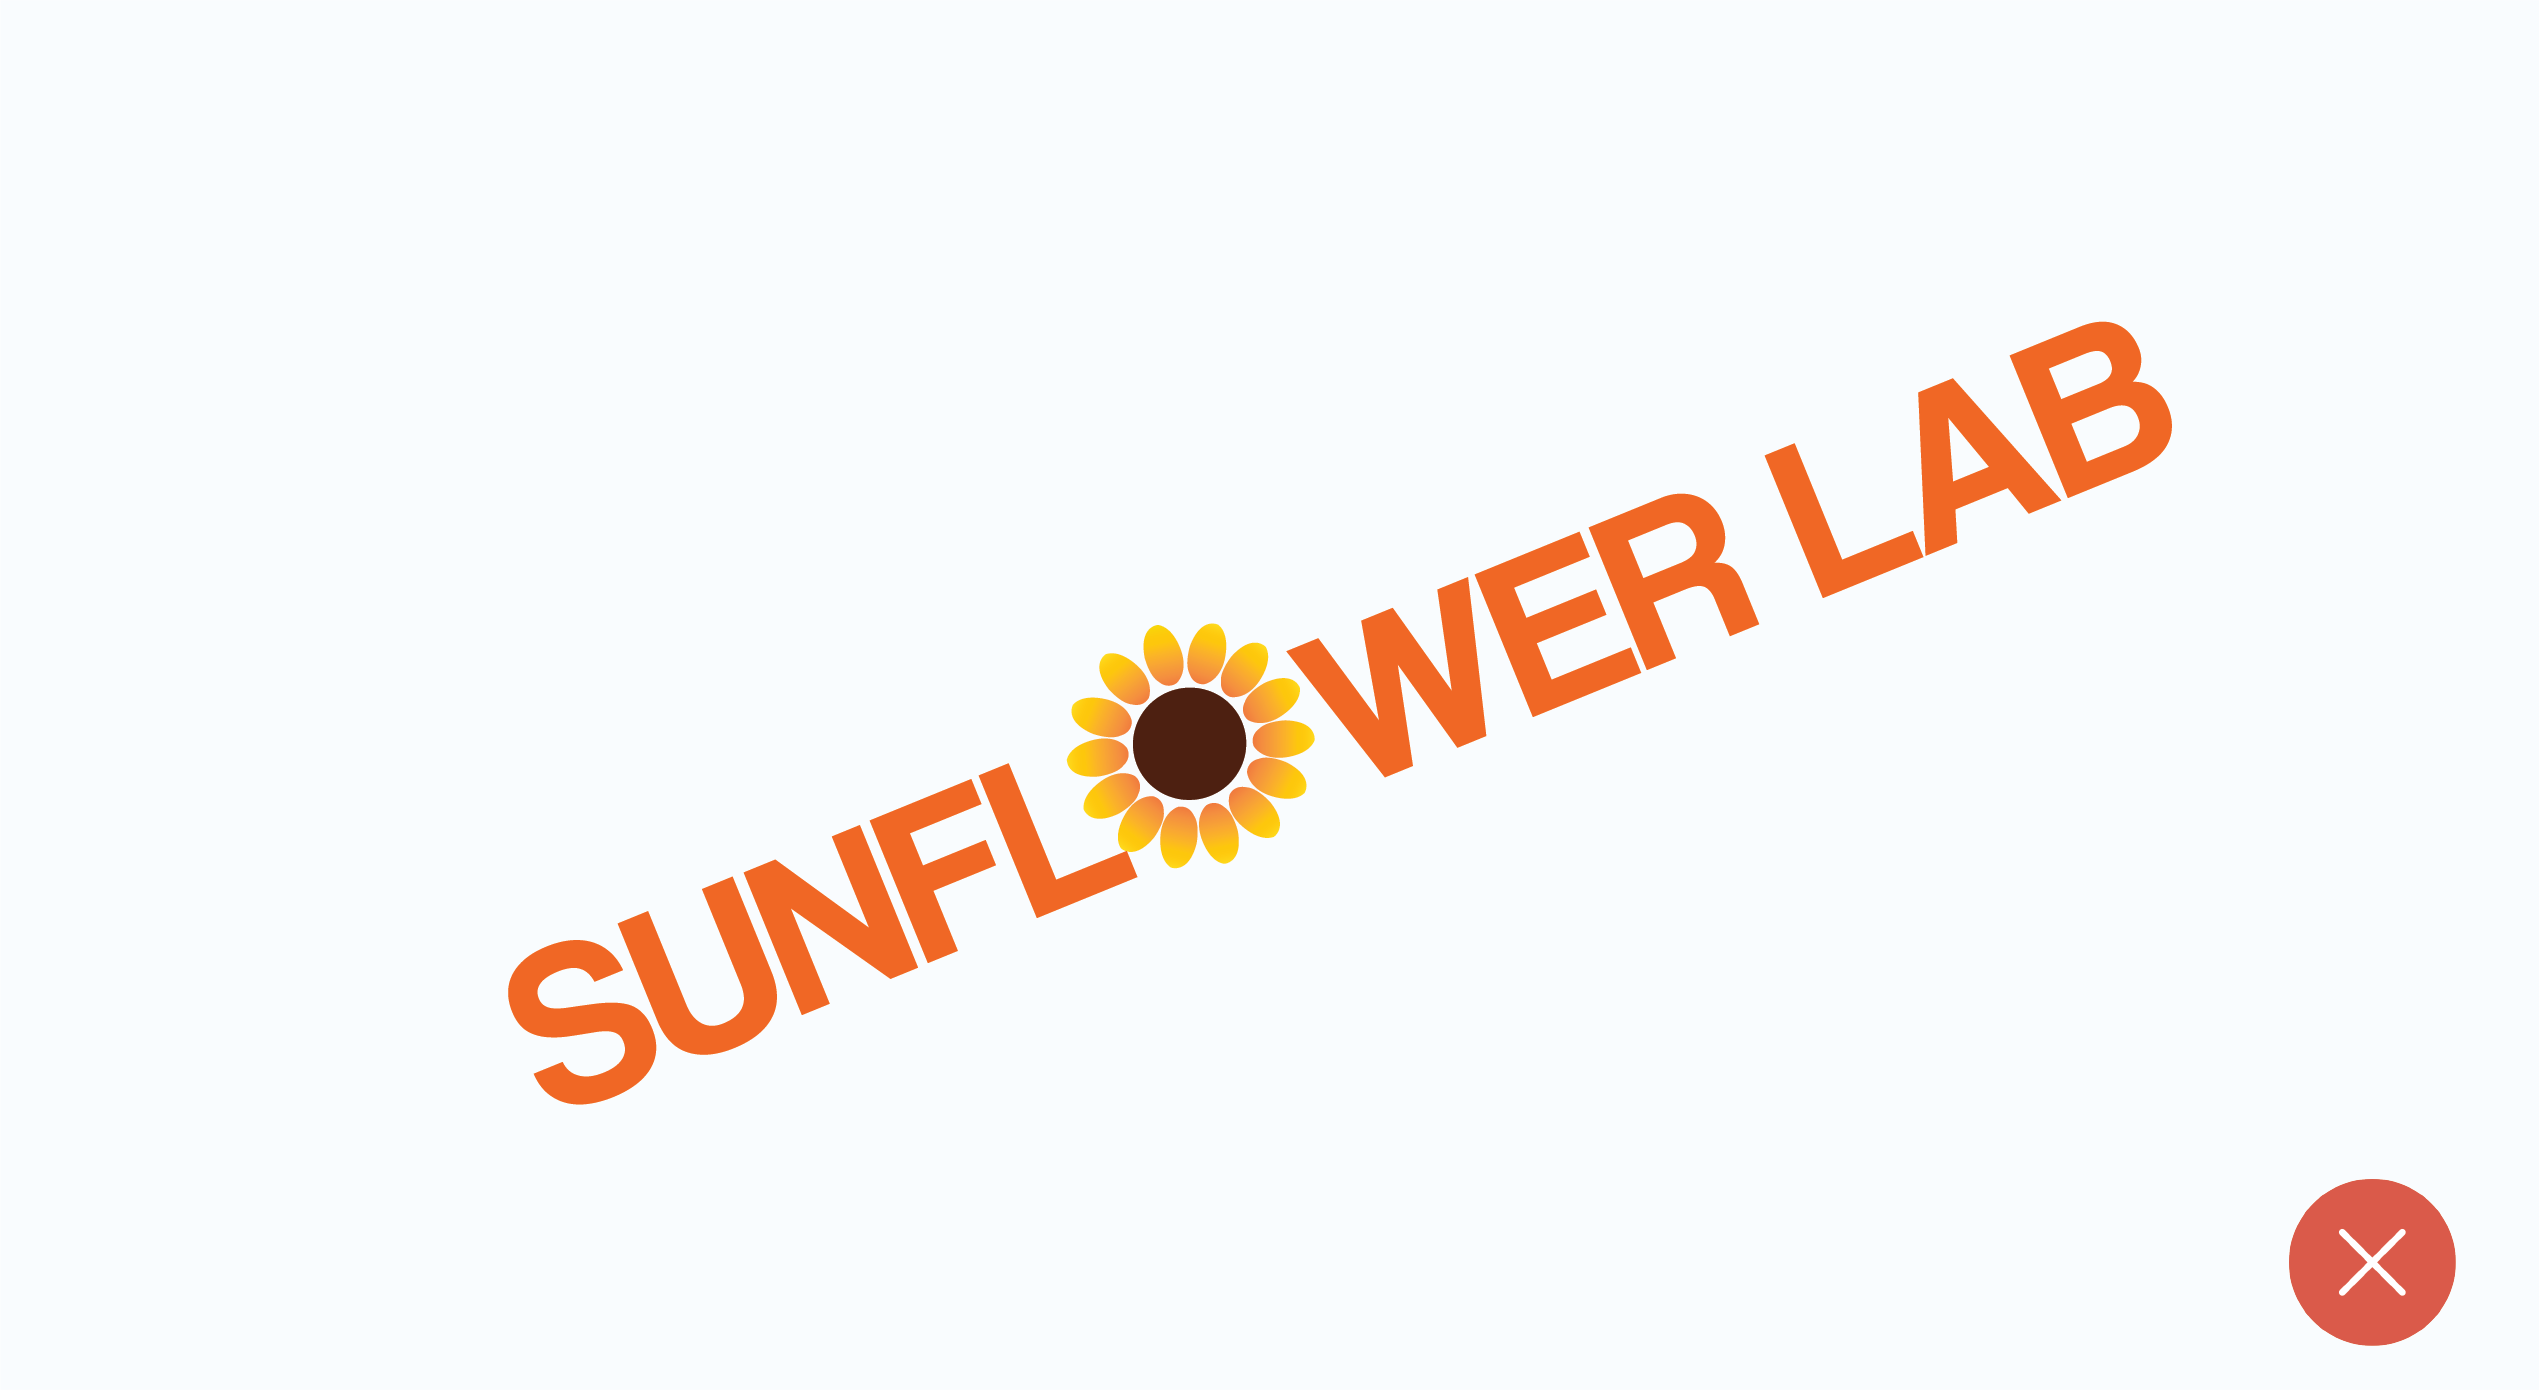 Sunflower lab 01